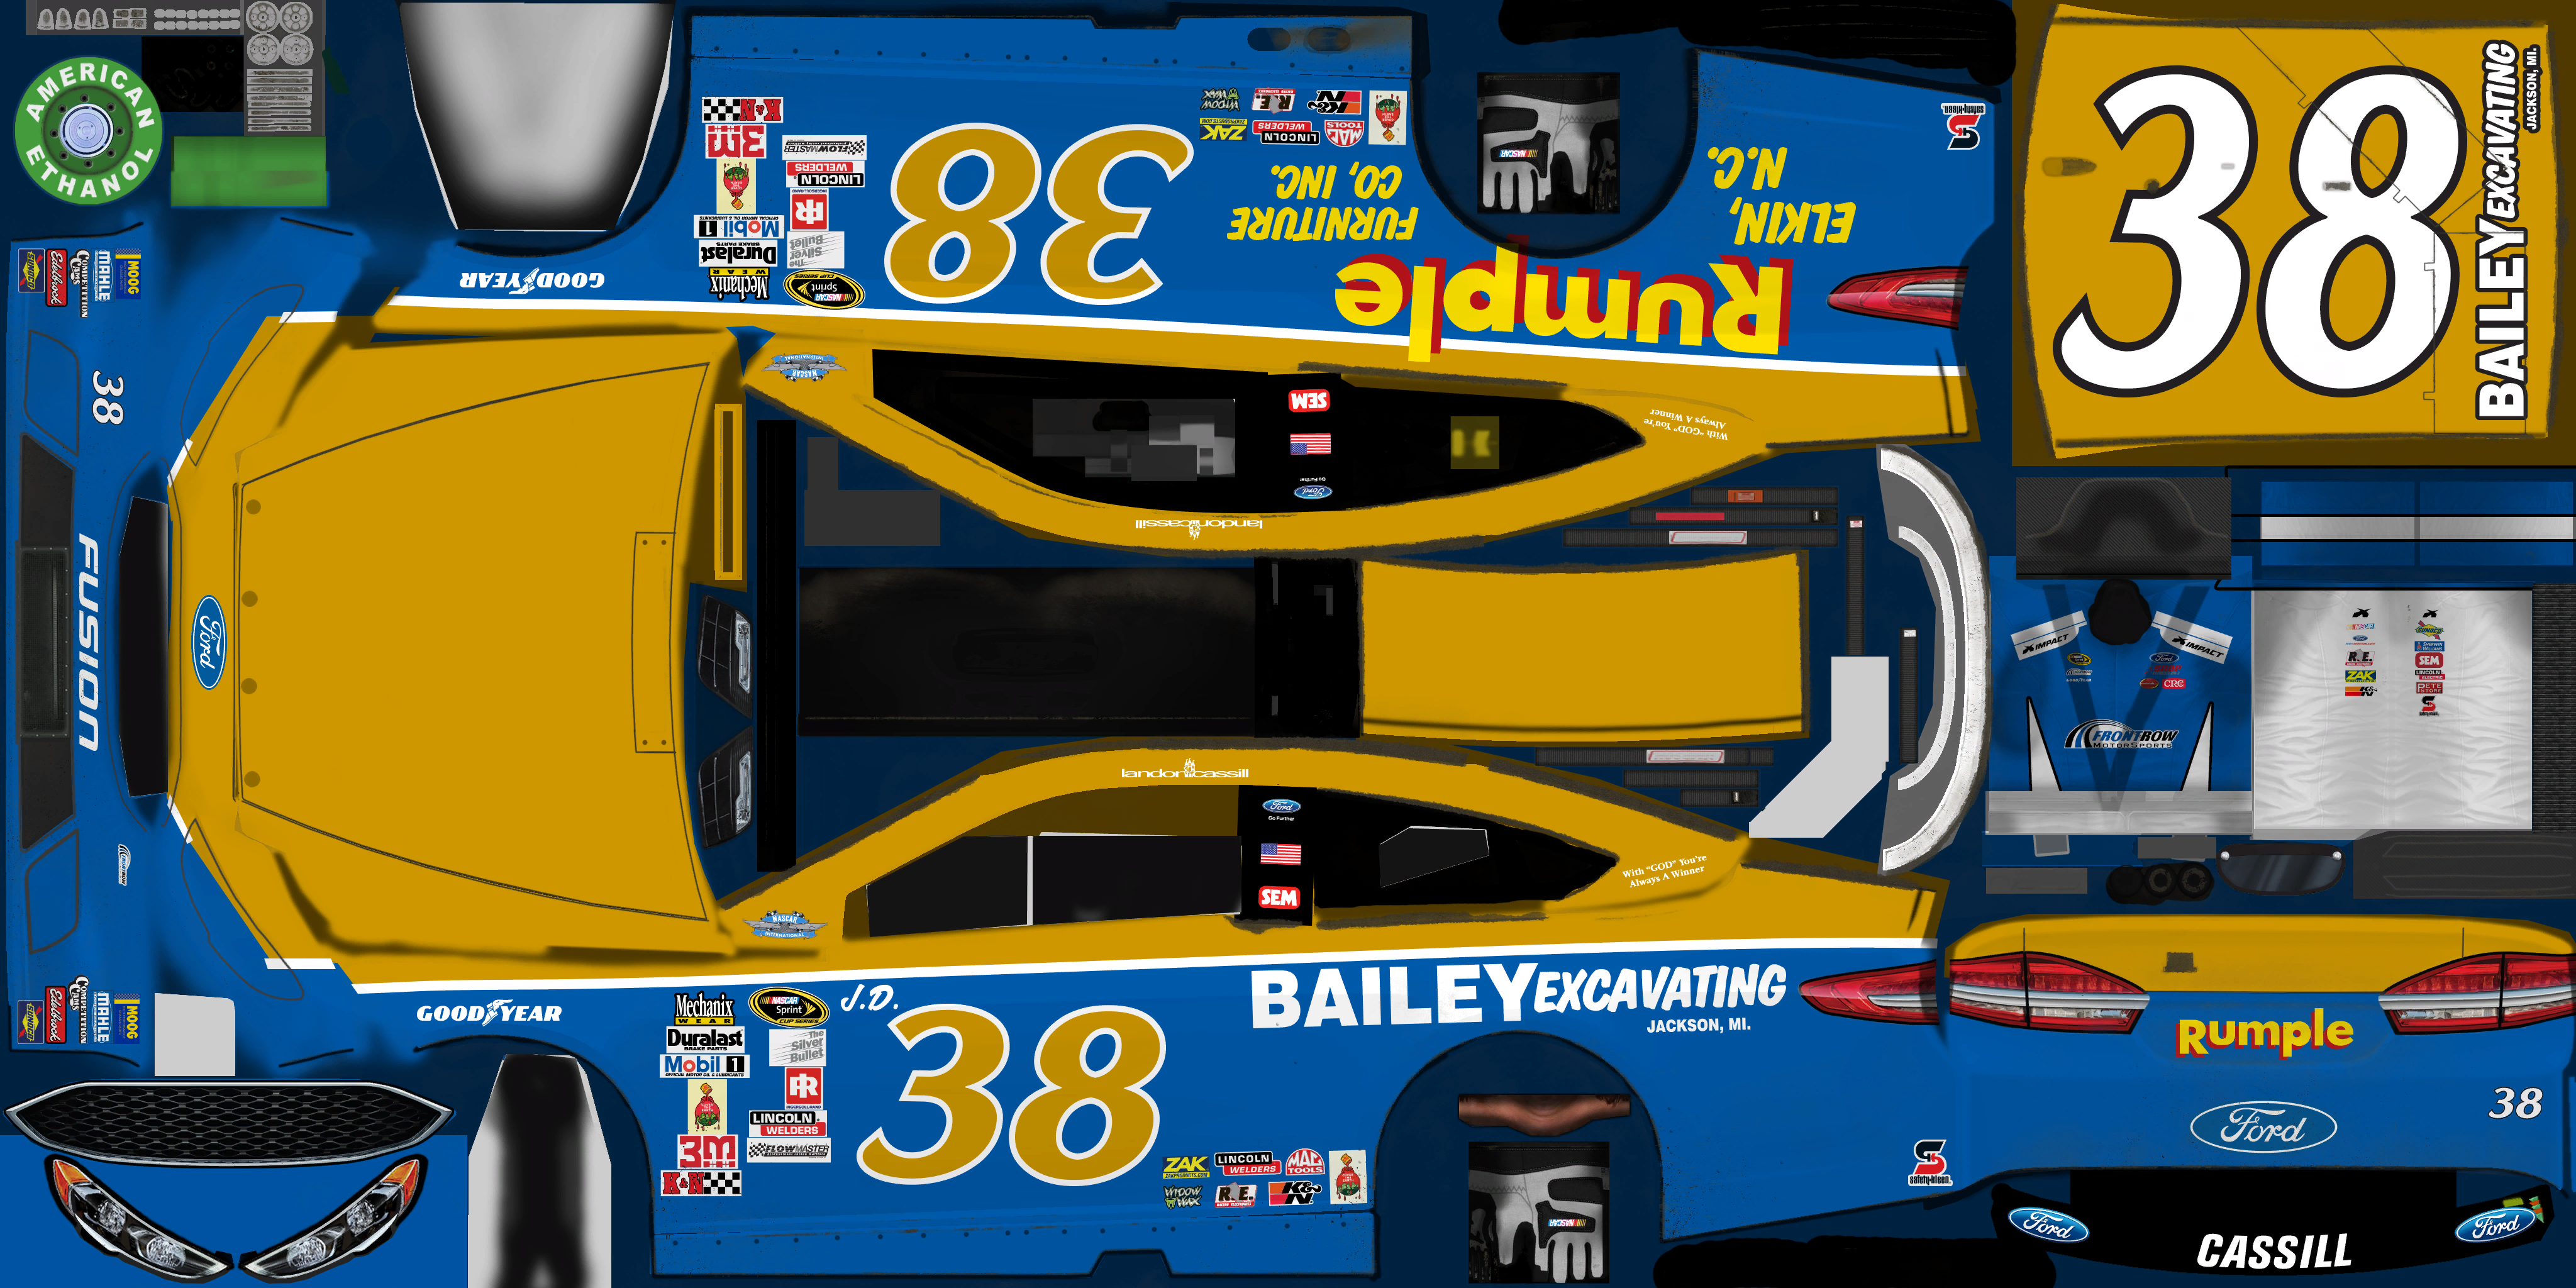 #38 Landon Cassill (Rumple Furniture/Bailey Excavating Throwback)